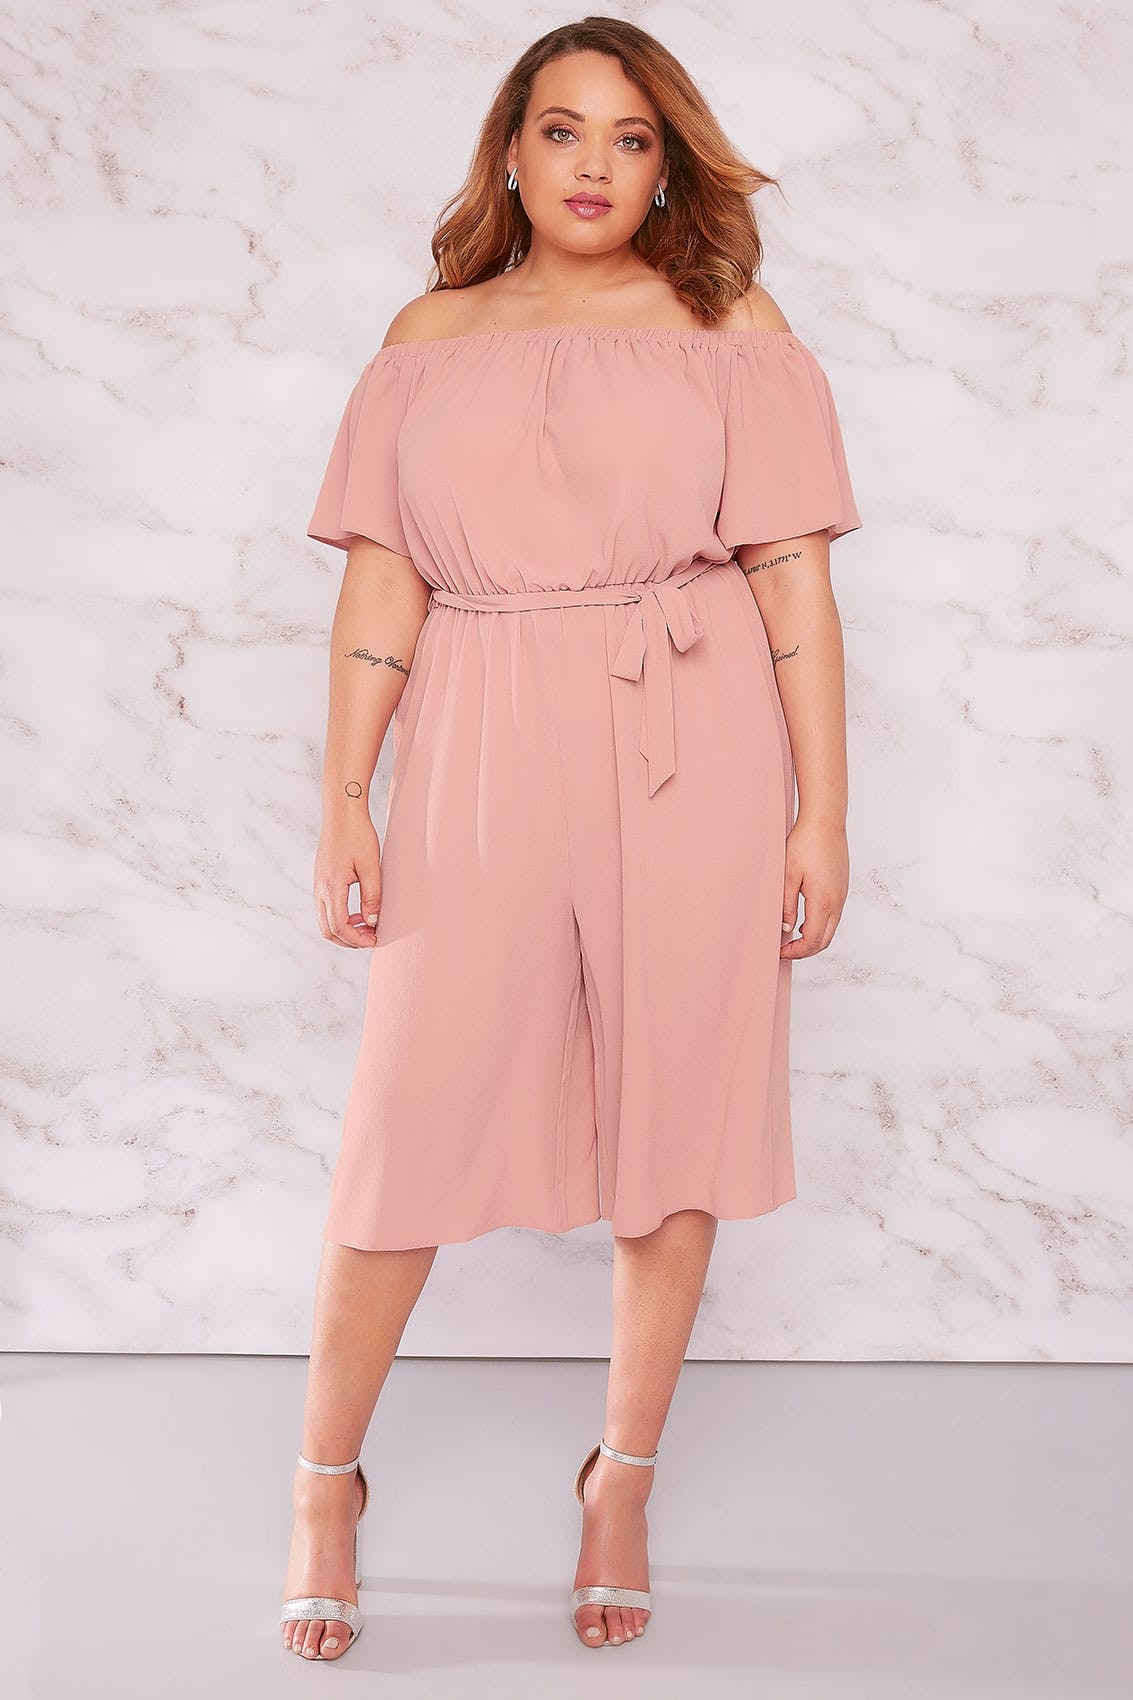 a182fd08db4 45 Plus Size Minimal Jumpsuits For The Most Effortlessly Perfect Fall Look